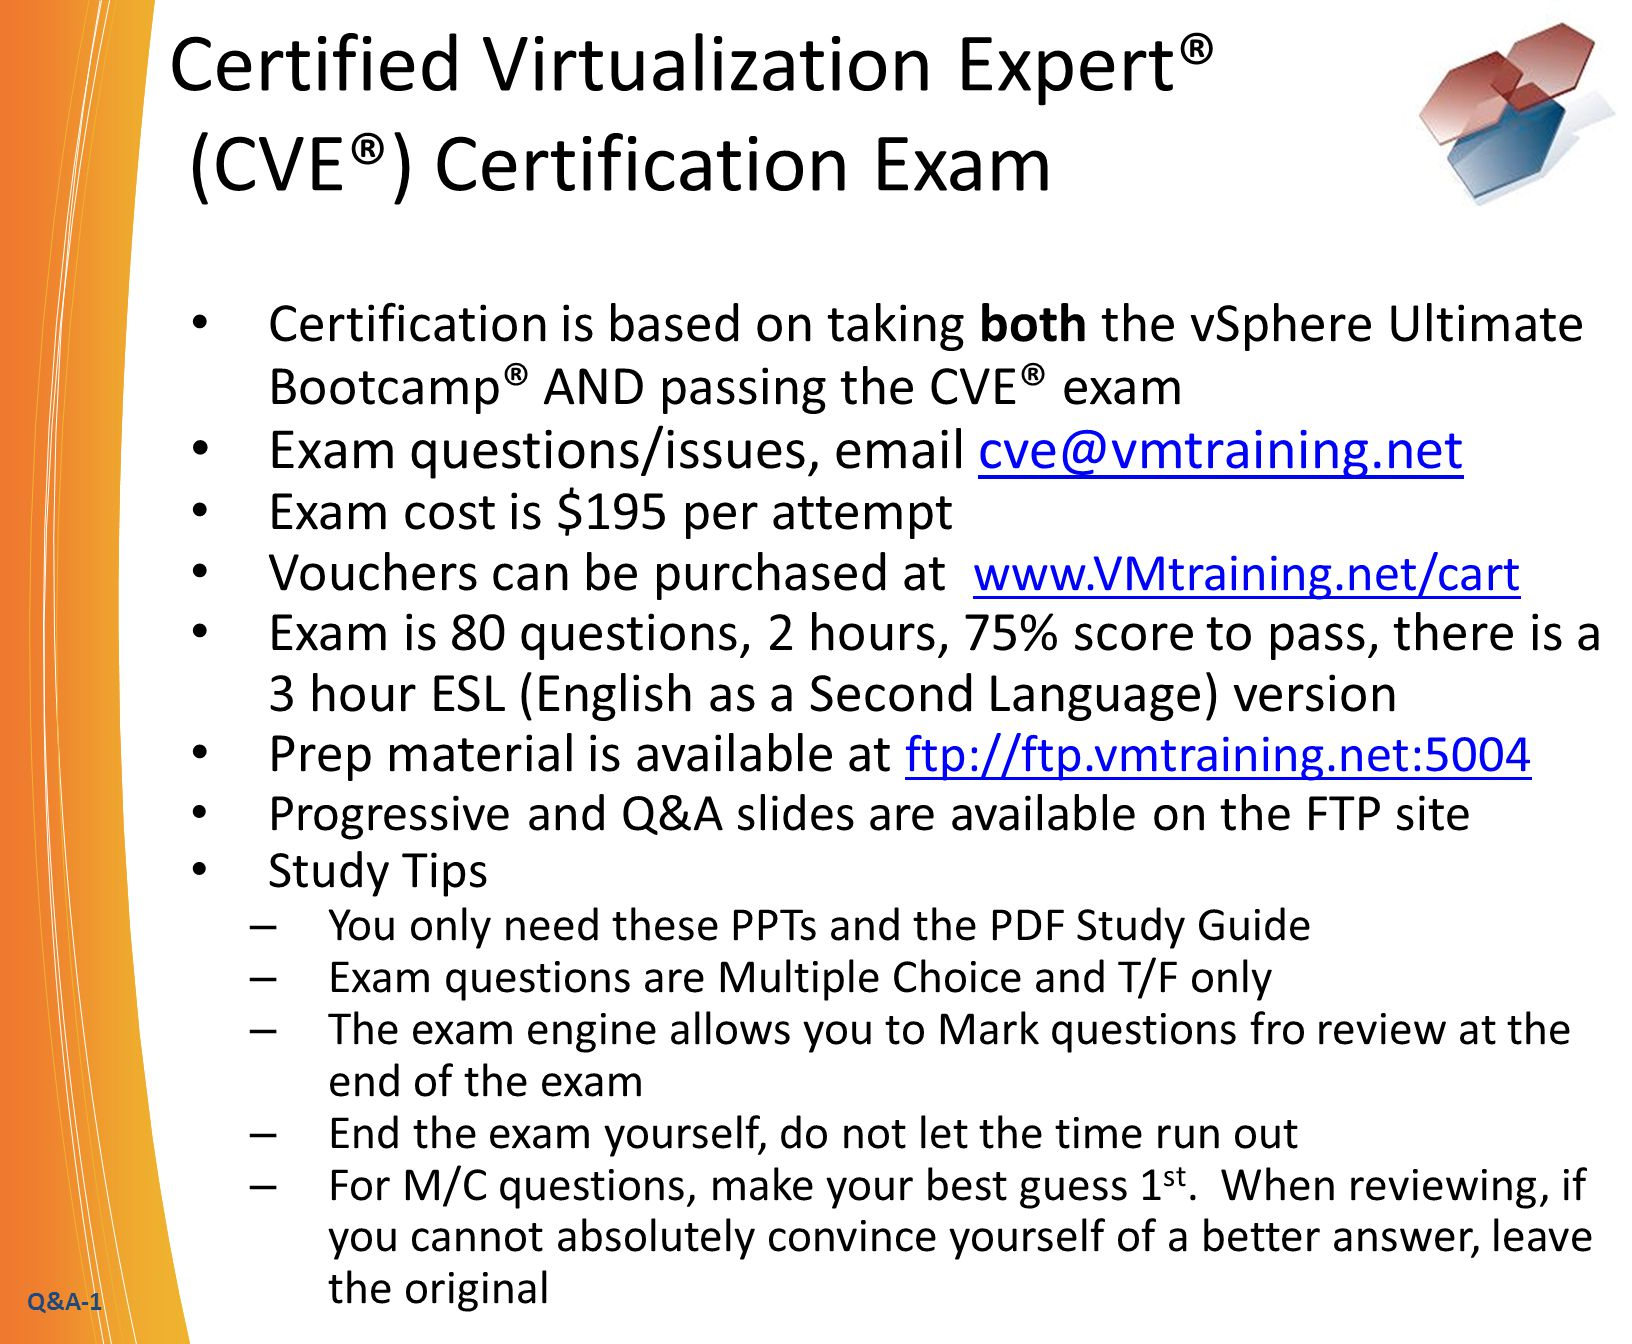 Q&A-1 Certified Virtualization Expert® (CVE®) Certification Exam Certification is based on taking both the vSphere Ultimate Bootcamp ® AND passing the CVE ® exam Exam questions/issues, email cve@vmtraining.netcve@vmtraining.net Exam cost is $195 per attempt Vouchers can be purchased at www.VMtraining.net/cart www.VMtraining.net/cart Exam is 80 questions, 2 hours, 75% score to pass, there is a 3 hour ESL (English as a Second Language) version Prep material is available at ftp://ftp.vmtraining.net:5004 ftp://ftp.vmtraining.net:5004 Progressive and Q&A slides are available on the FTP site Study Tips – You only need these PPTs and the PDF Study Guide – Exam questions are Multiple Choice and T/F only – The exam engine allows you to Mark questions fro review at the end of the exam – End the exam yourself, do not let the time run out – For M/C questions, make your best guess 1 st.